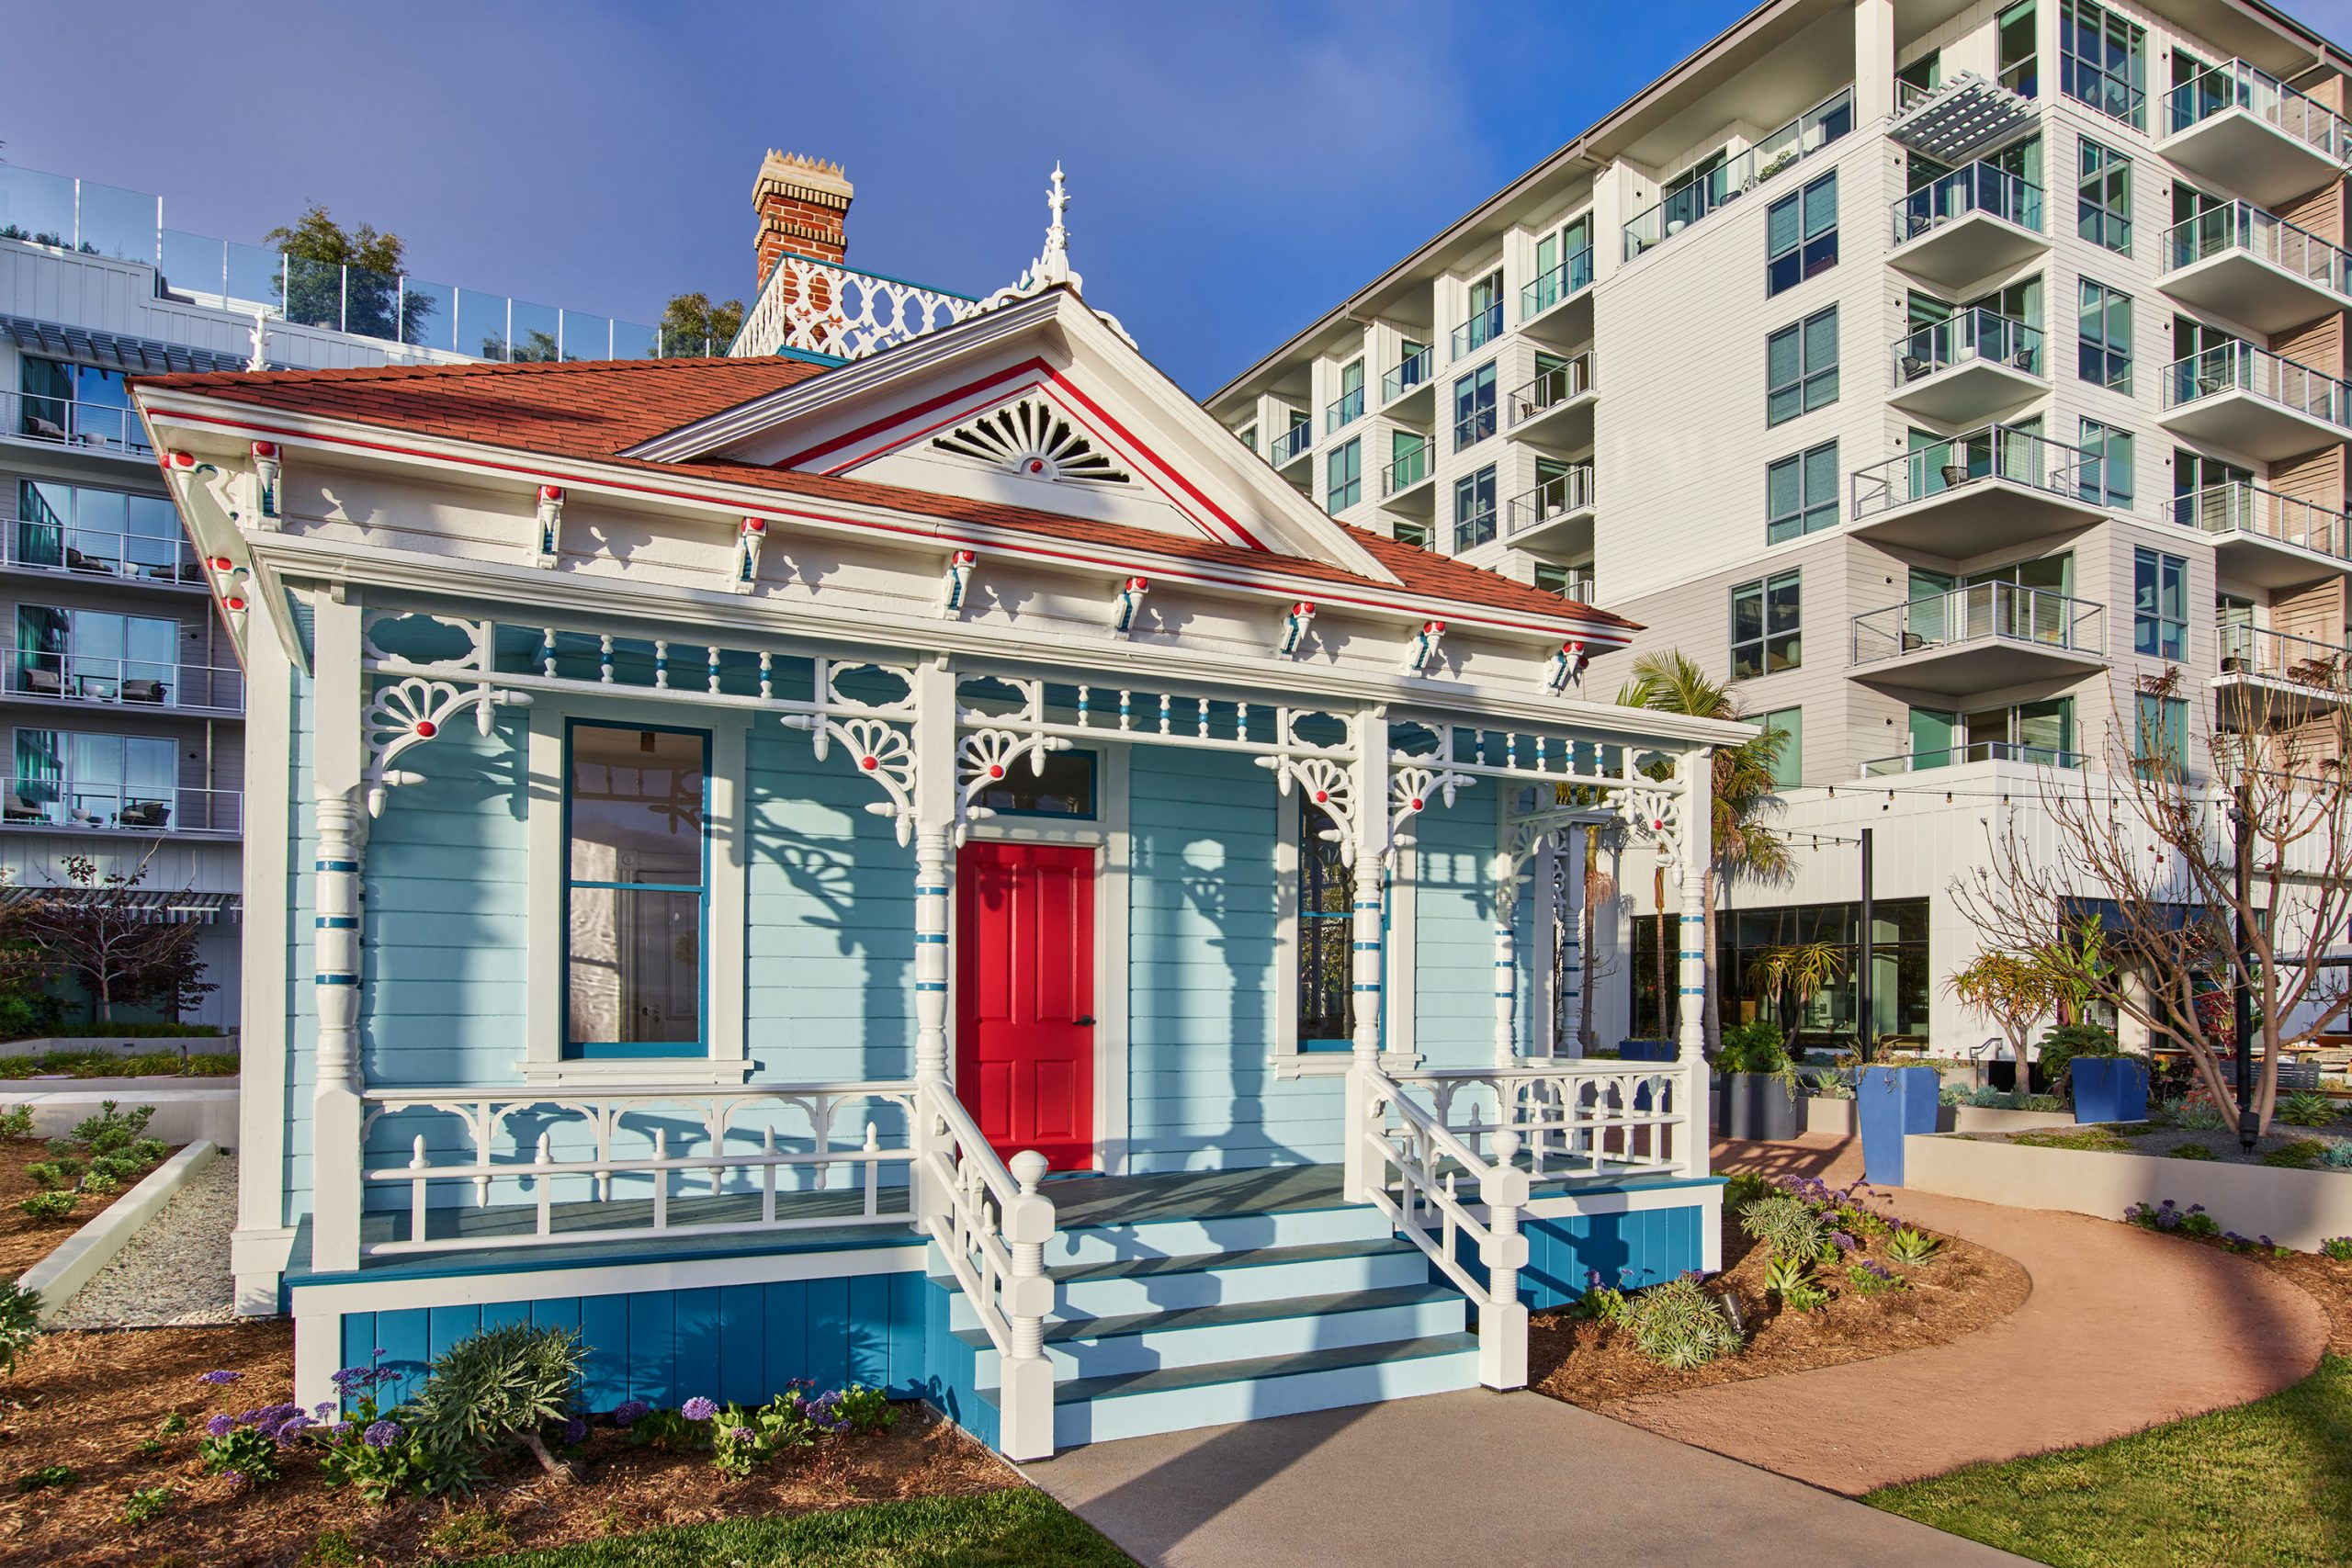 Top Gun House at Mission Pacific Hotel in Oceanside